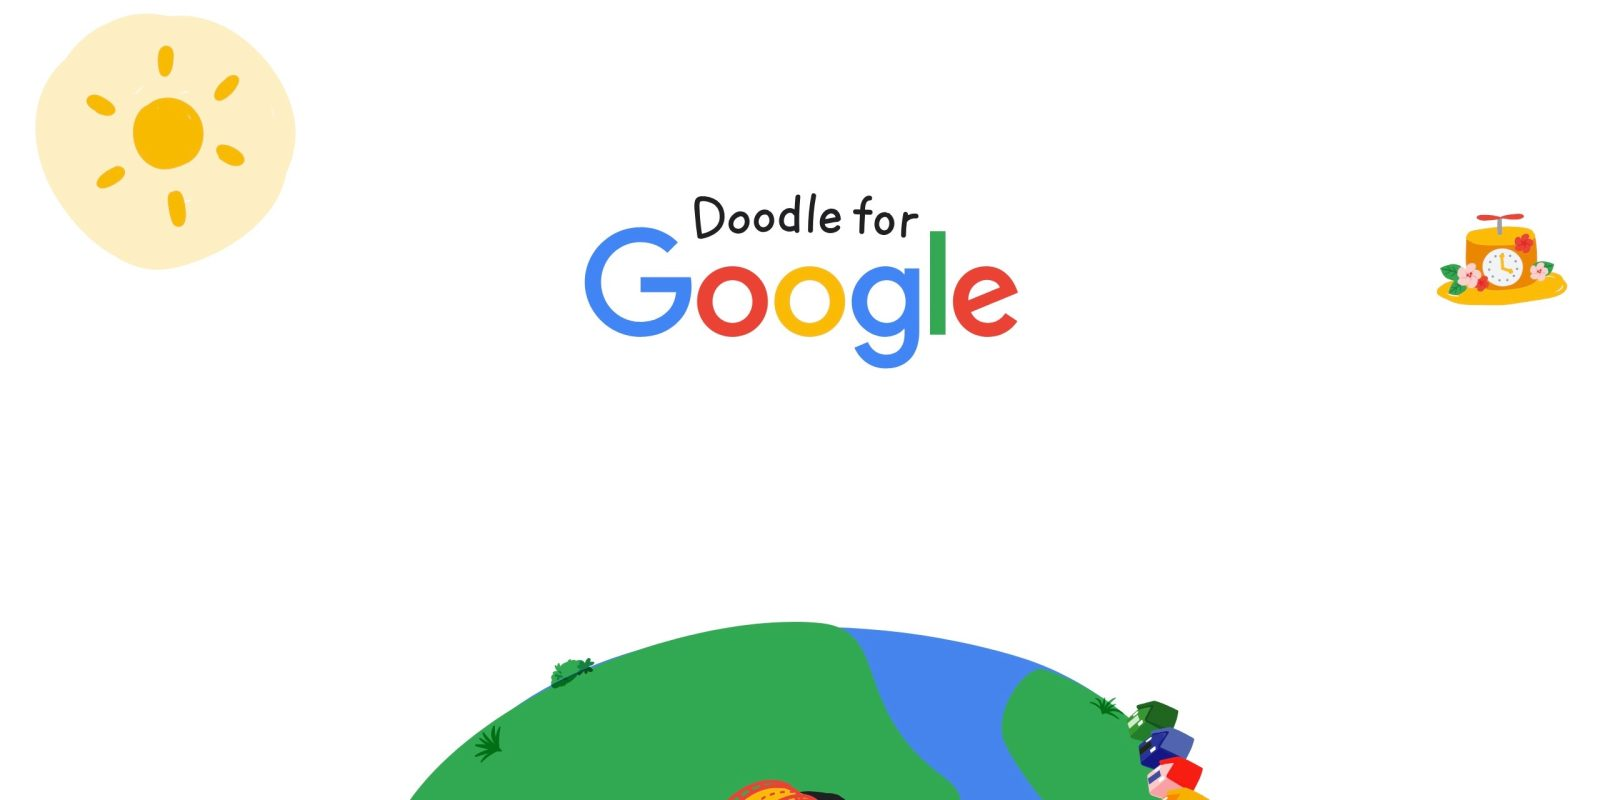 """Doodle for Google 2019 kicks off with """"When I grow up, I hope"""